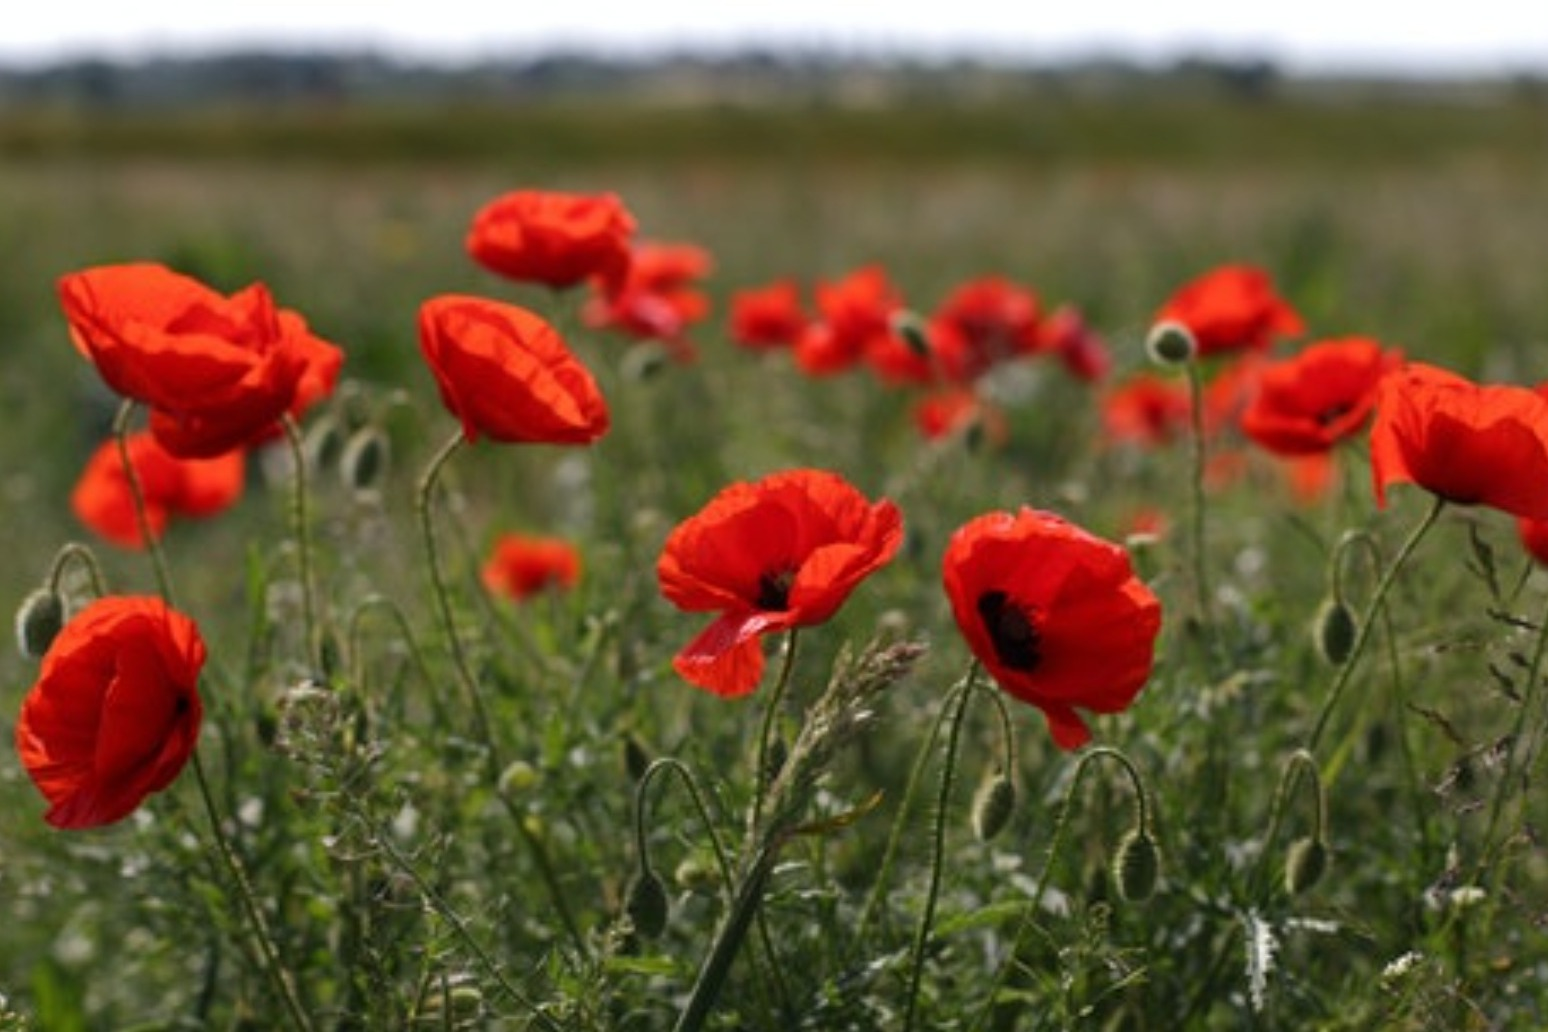 Nation to pay respects to war dead on Armistice Day